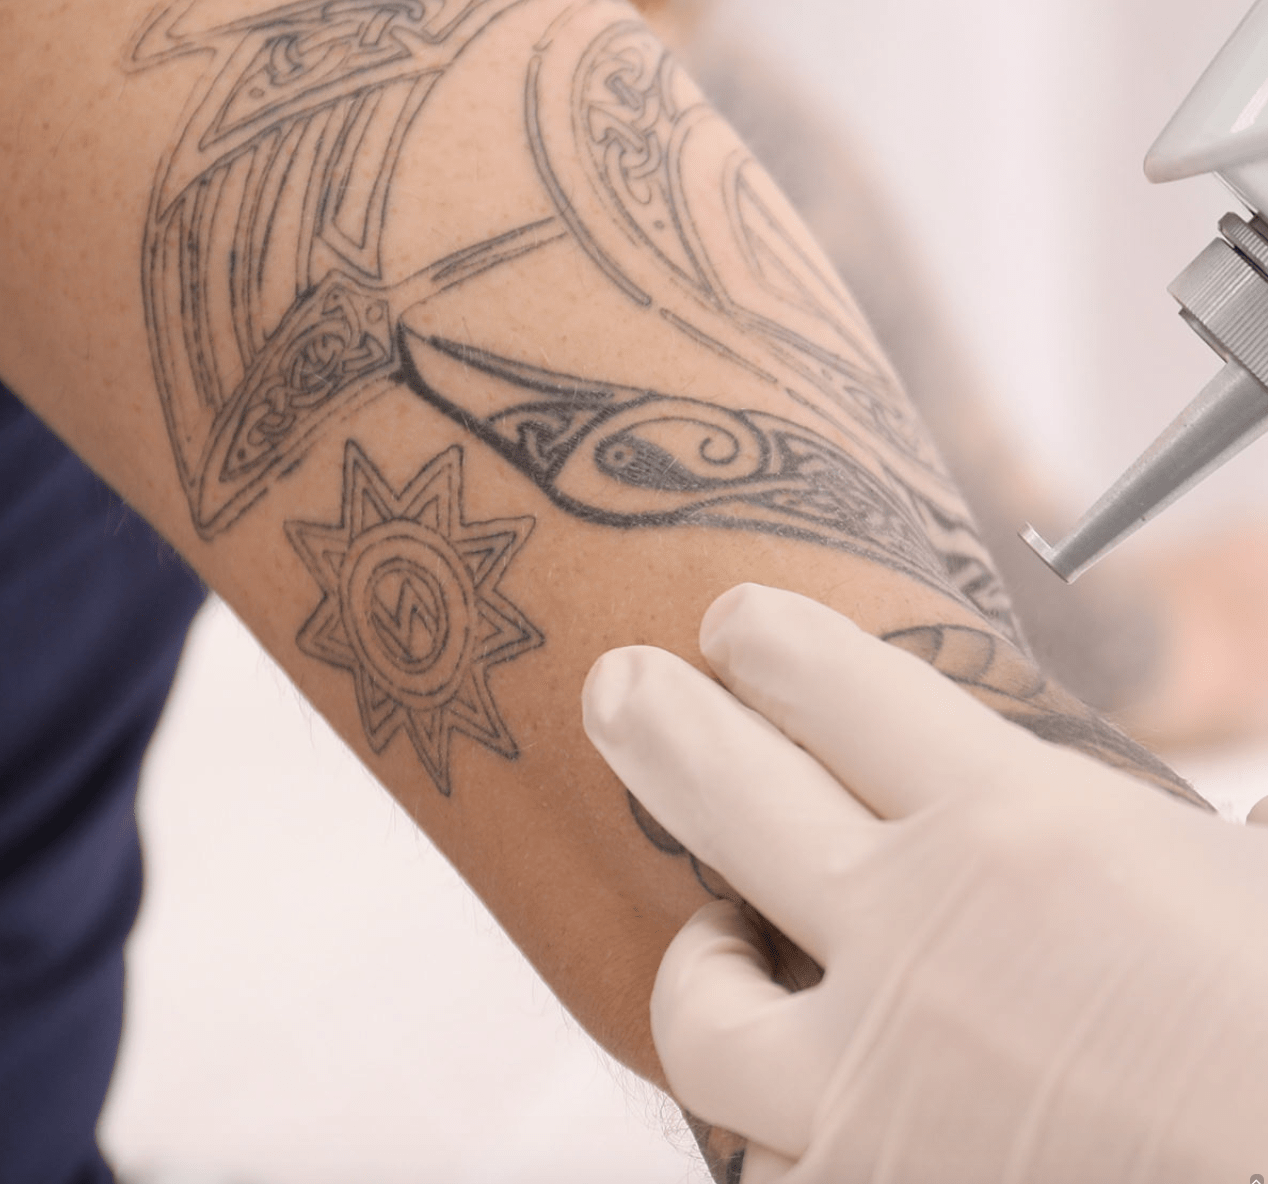 Removing Tattoos with Sound: RAP Tattoo Removal | Virtuul News